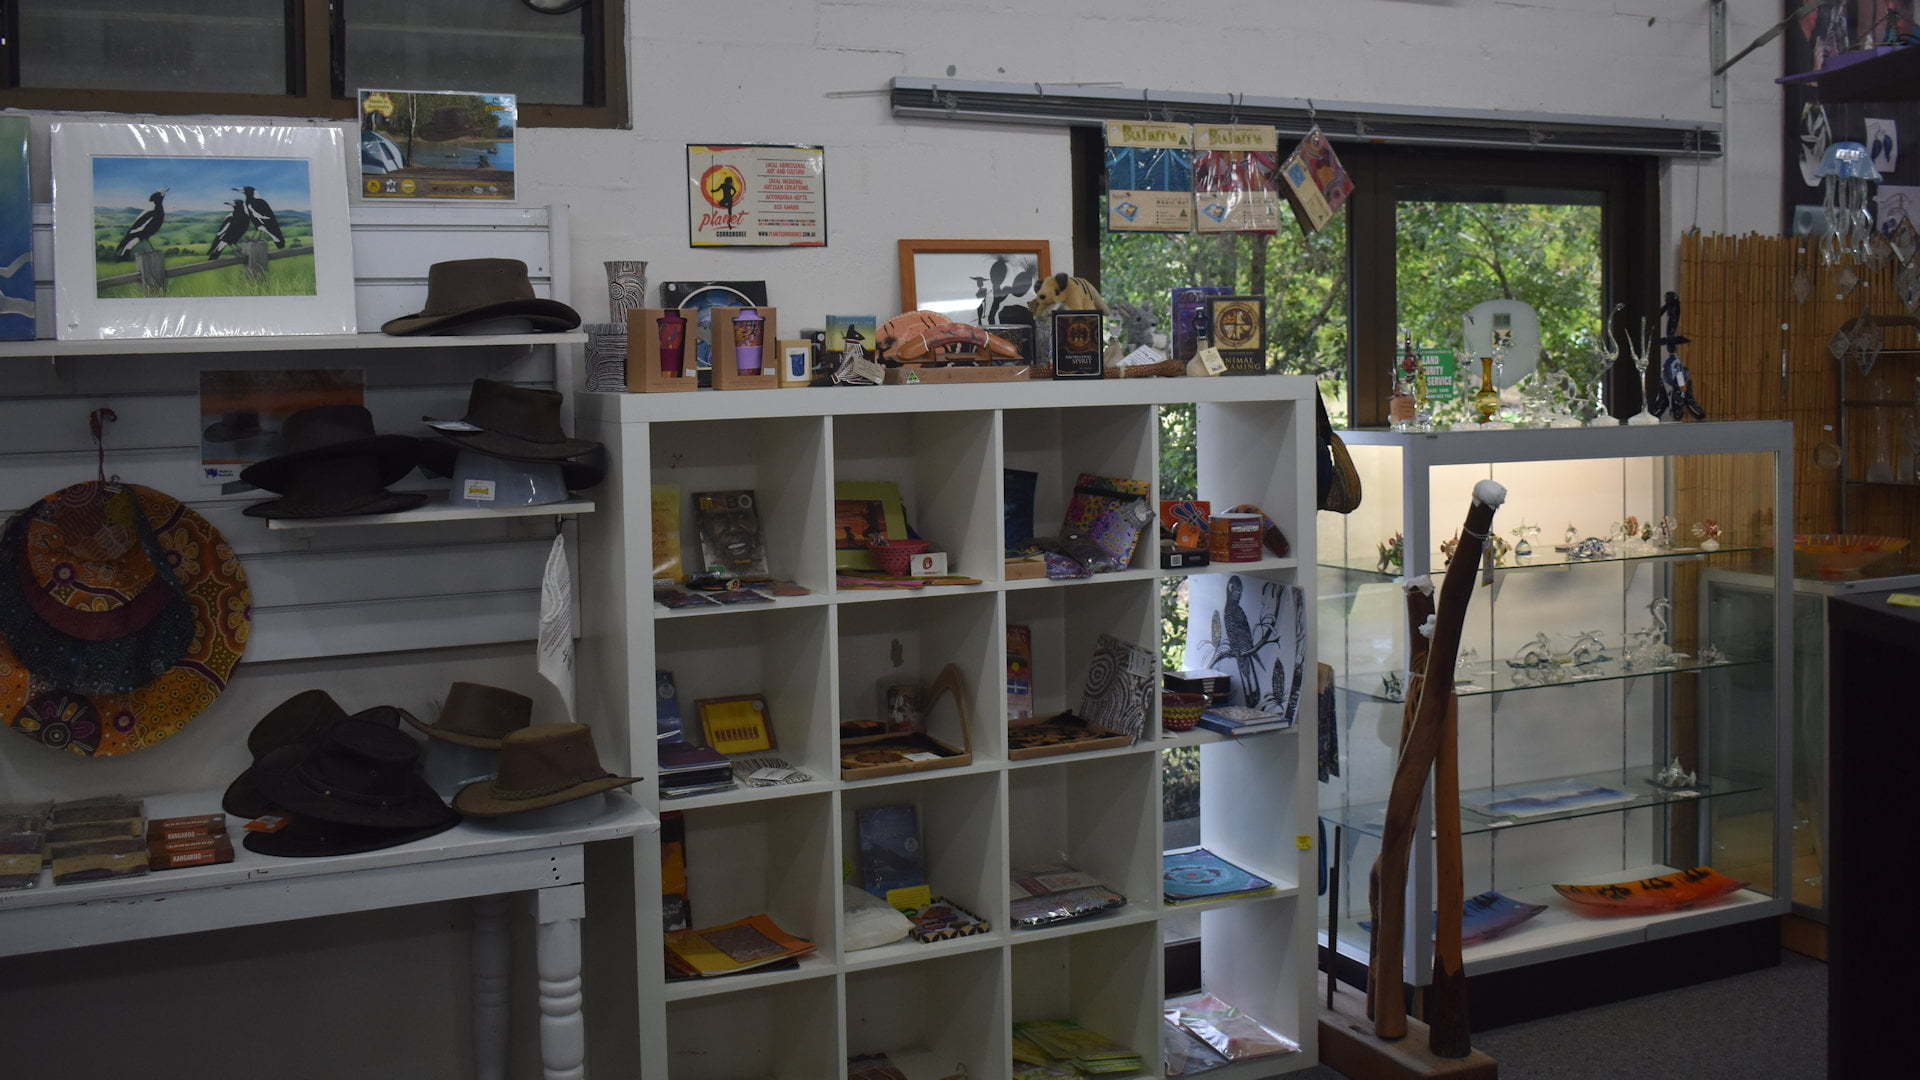 Display of arts and crafts in New Italy New glass art shop and gallery in South Wales